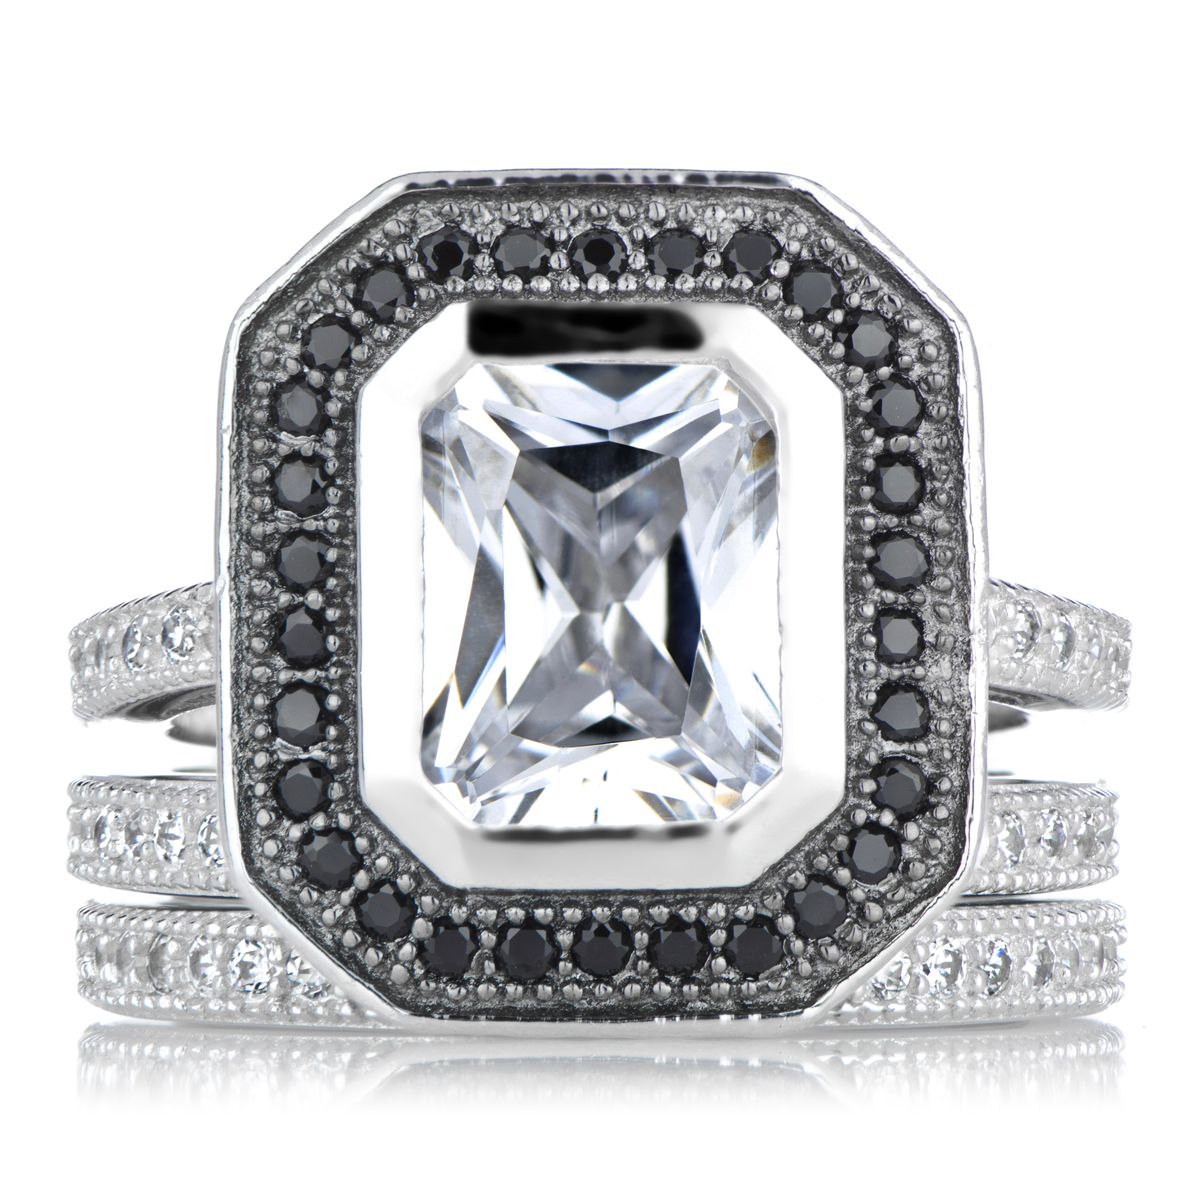 juanas cubic zirconia wedding ring set with black halo roll off image to close zoom window - Cubic Zirconia Wedding Rings